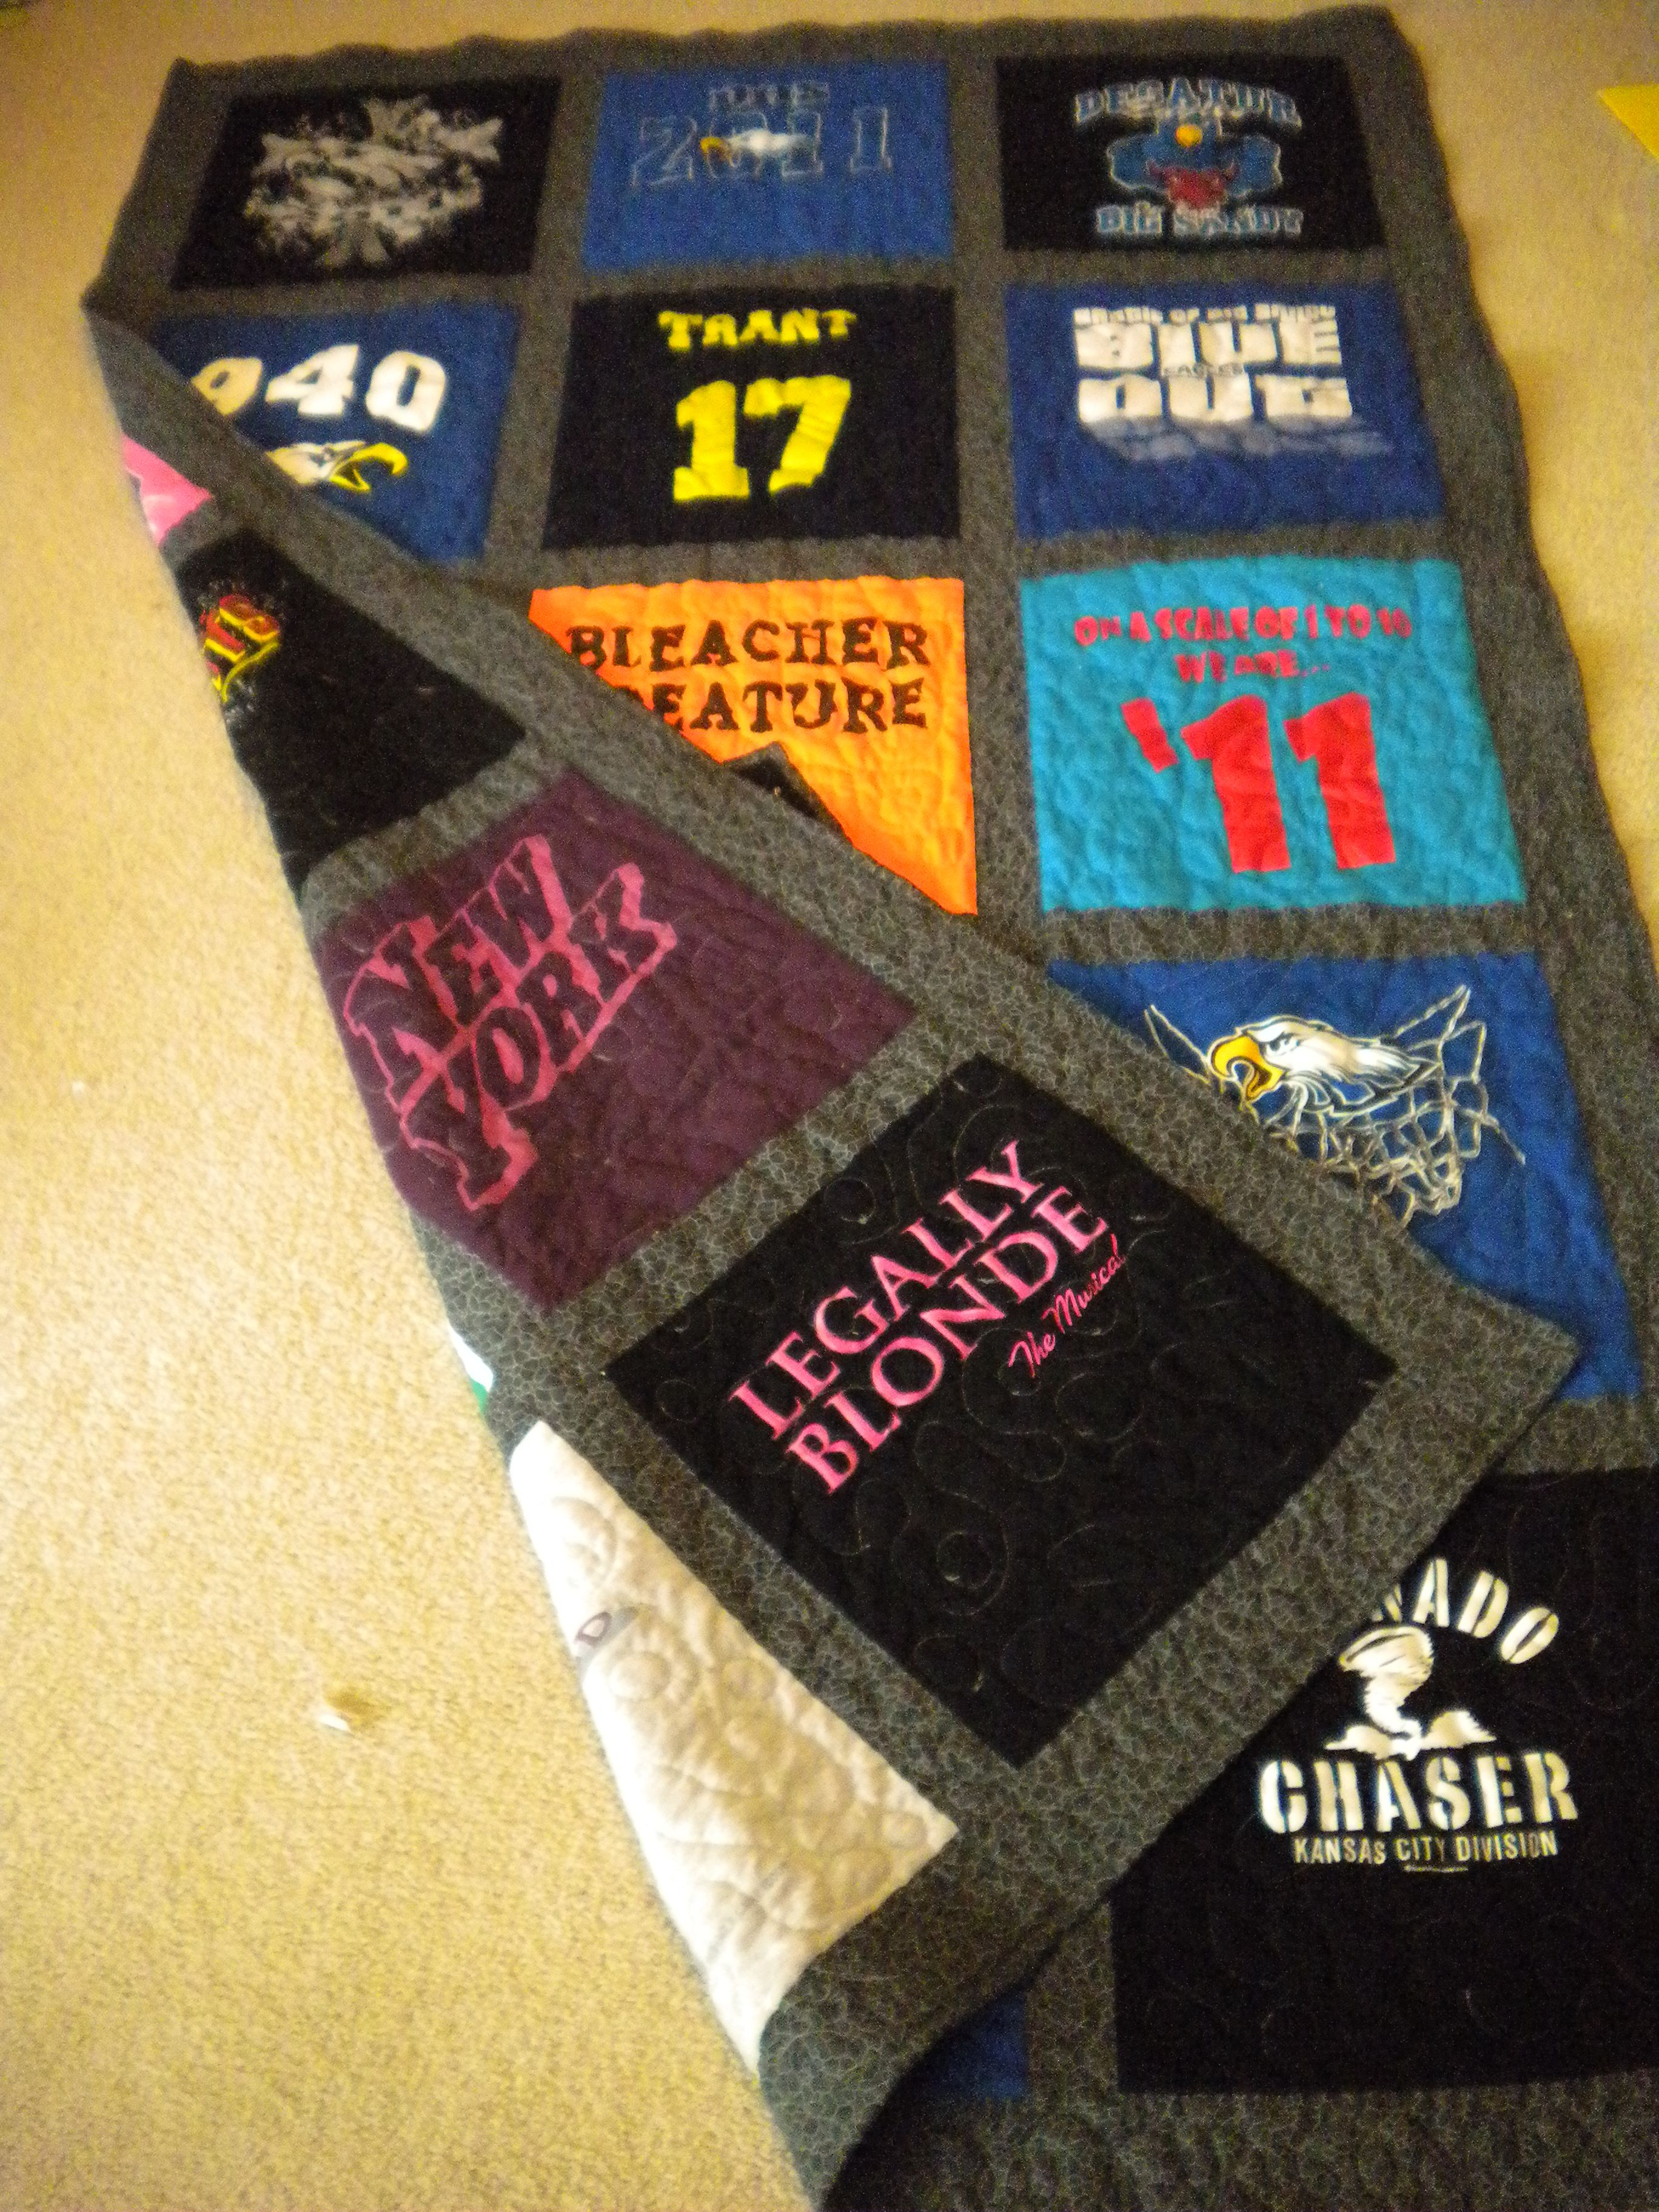 Double Sided Tshirt Quilt Like The Look Of This One Too With The